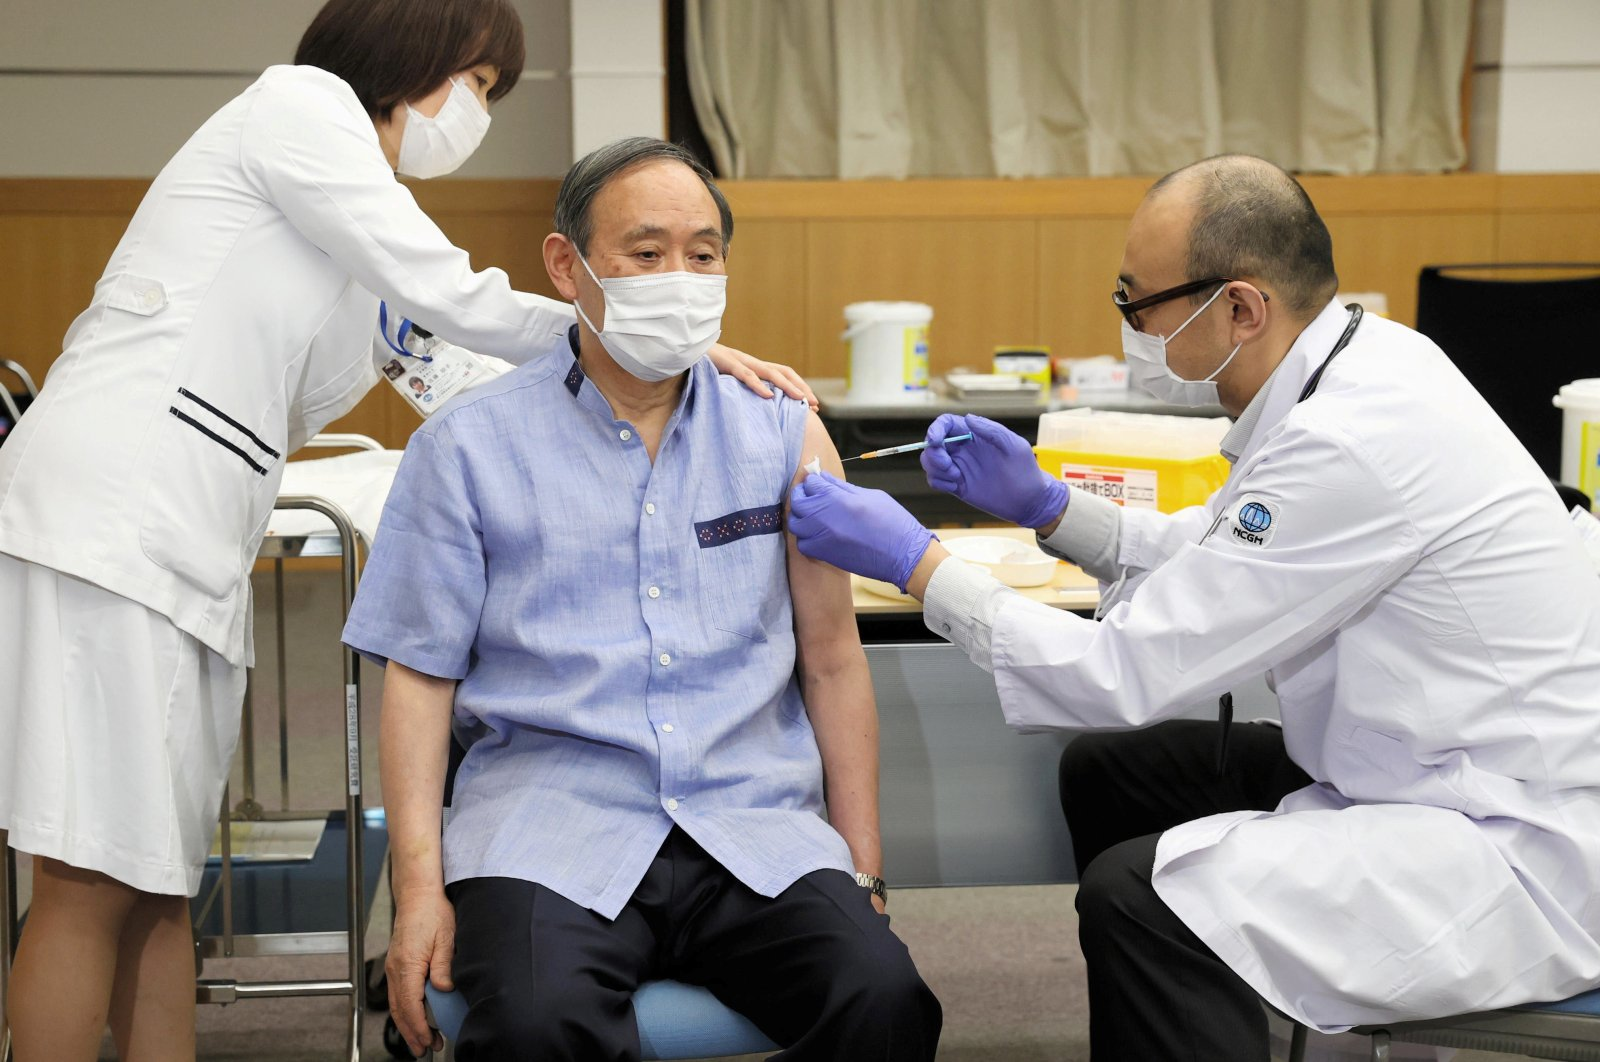 Japan's Prime Minister Yoshihide Suga receives his first dose of the Pfizer-BioNTech coronavirus vaccine at the National Center for Global Health and Medicine in Tokyo, Japan March 16, 2021. (Kyodo via REUTERS)